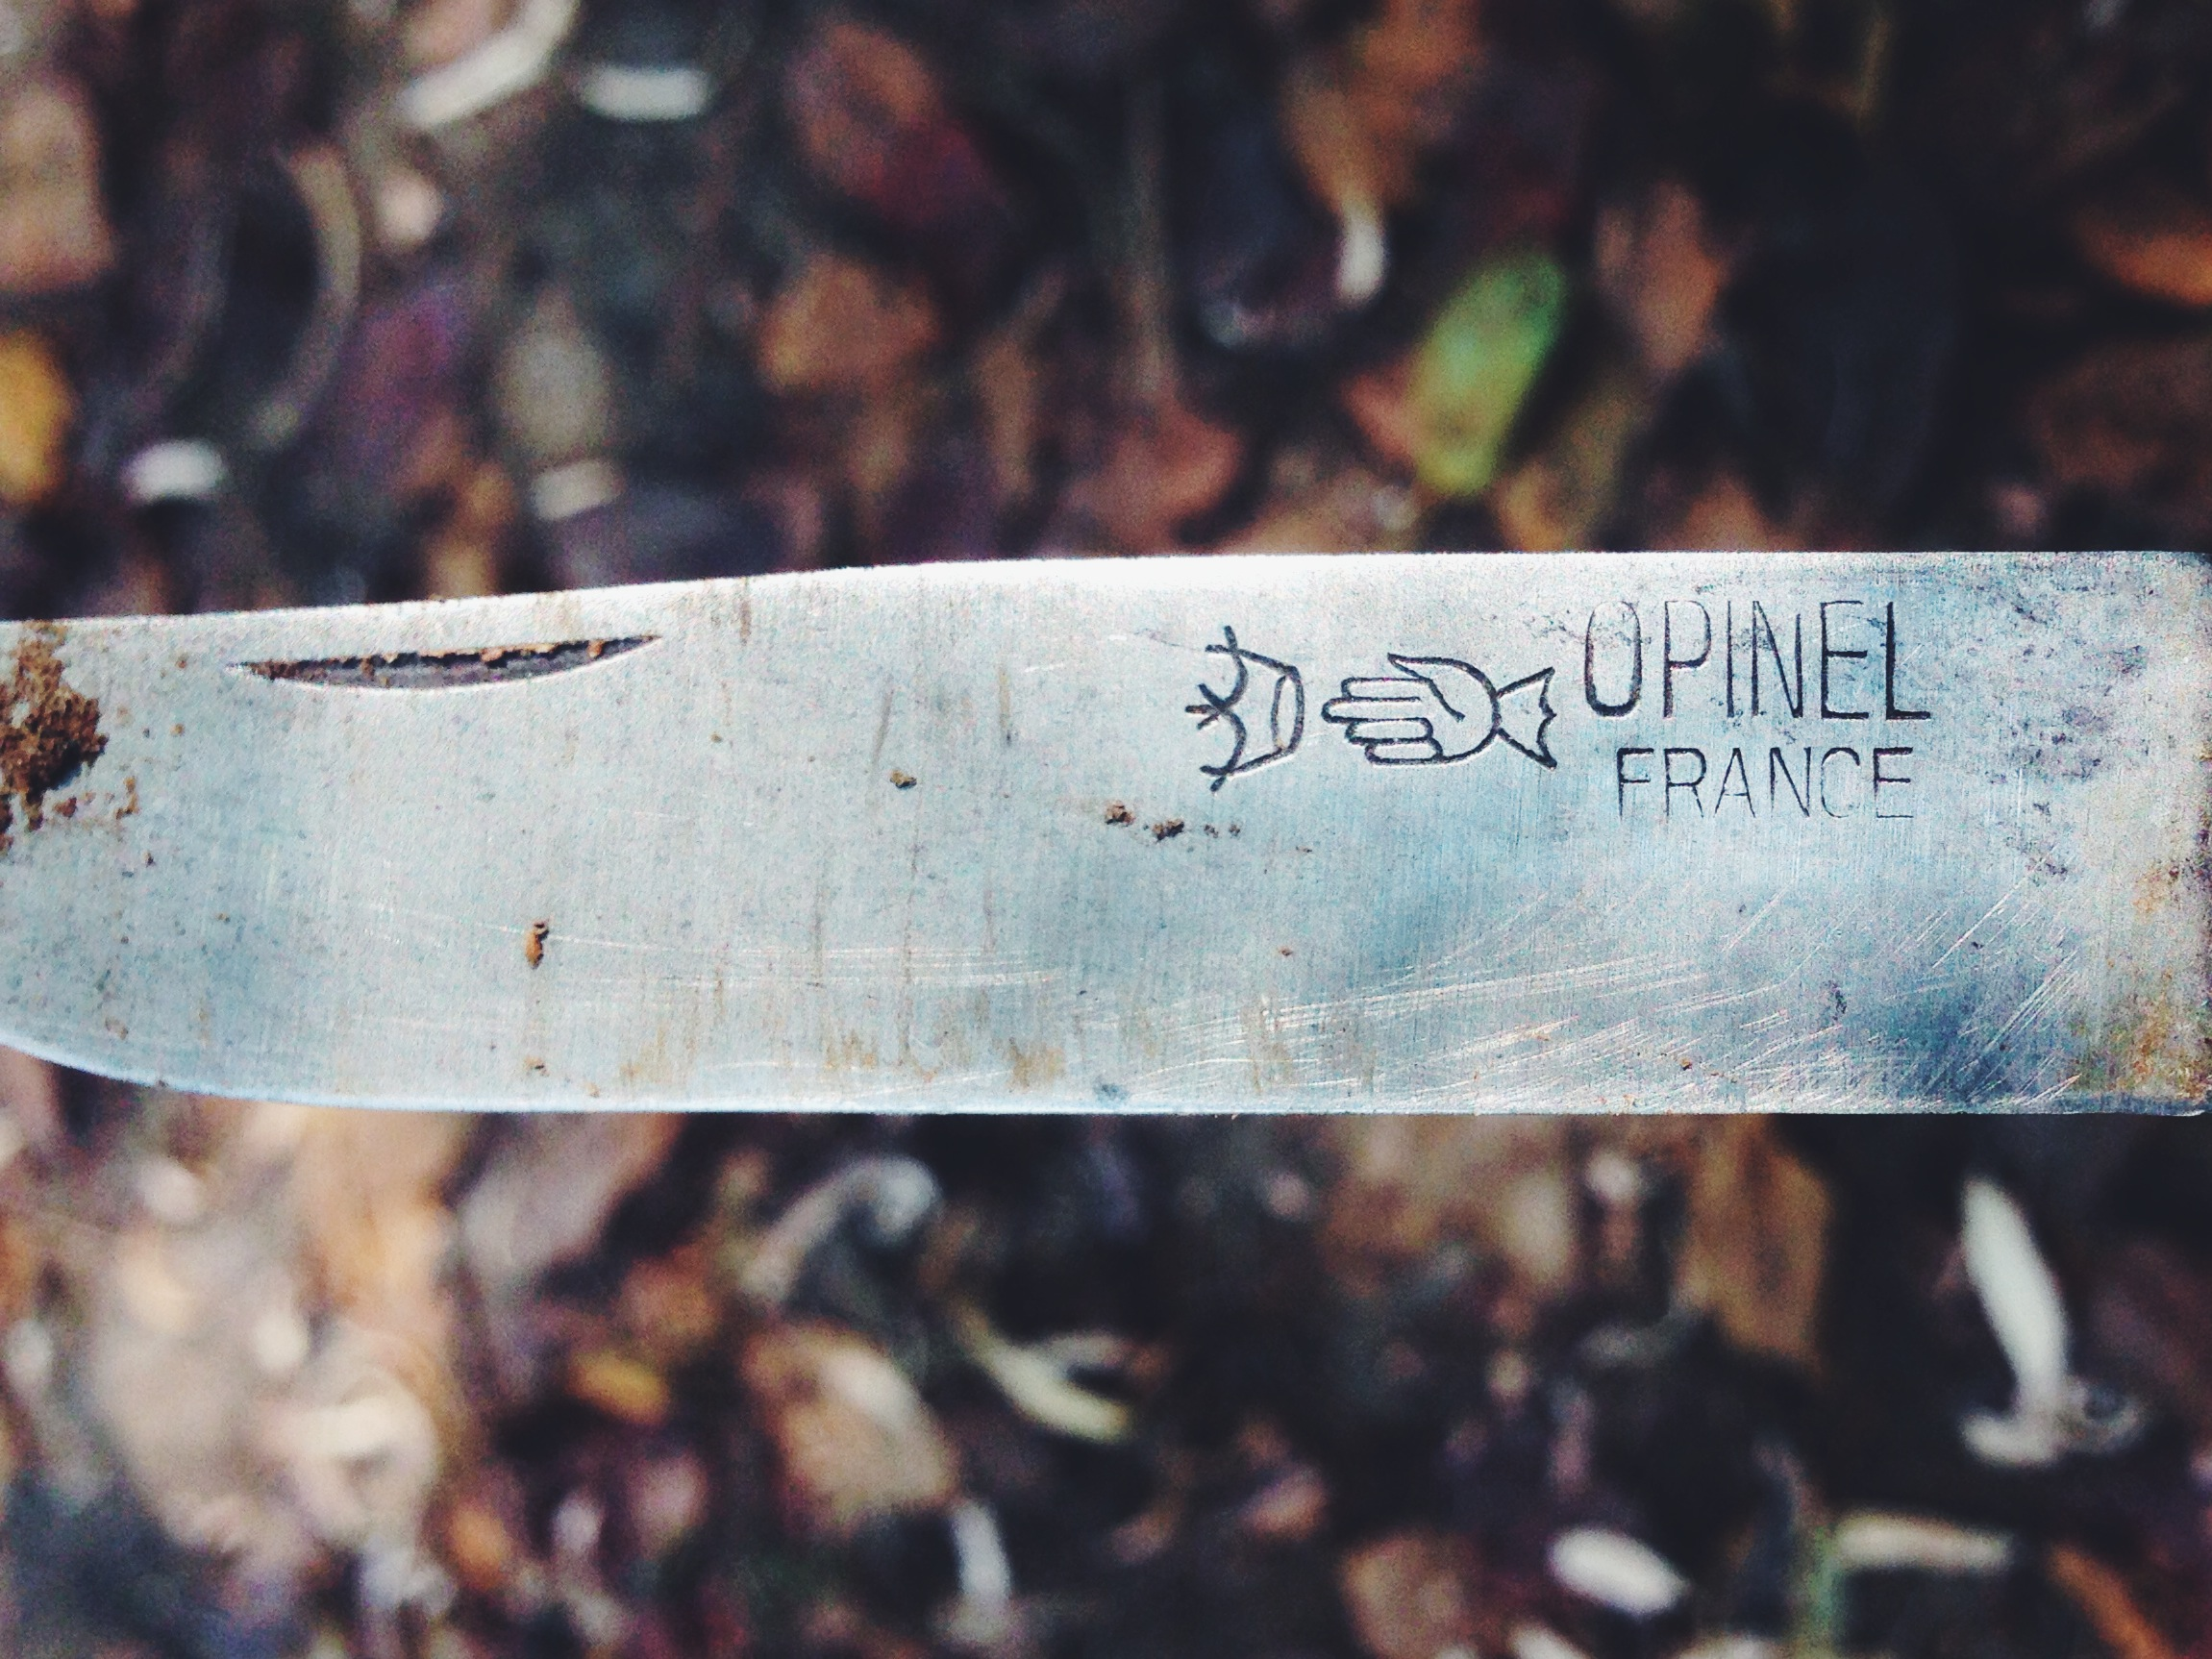 Blade graphics are great! This one is especially fantastic. OPINEL